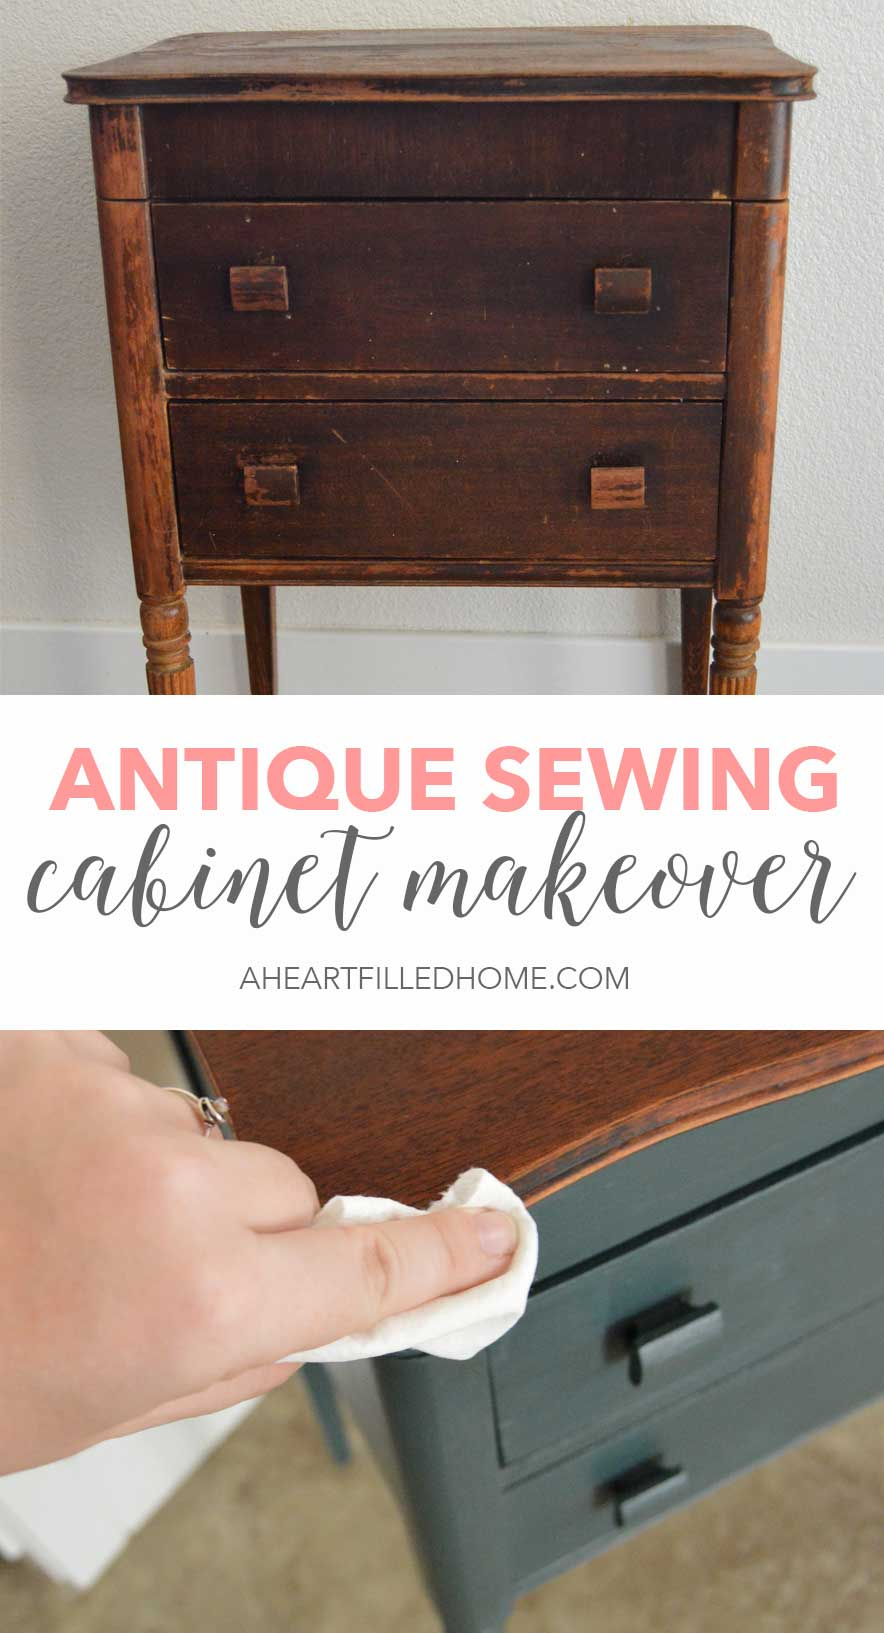 This Antique Sewing Cabinet Got A Beautiful Makeover! Using Paint, Clear  Coat And Hemp